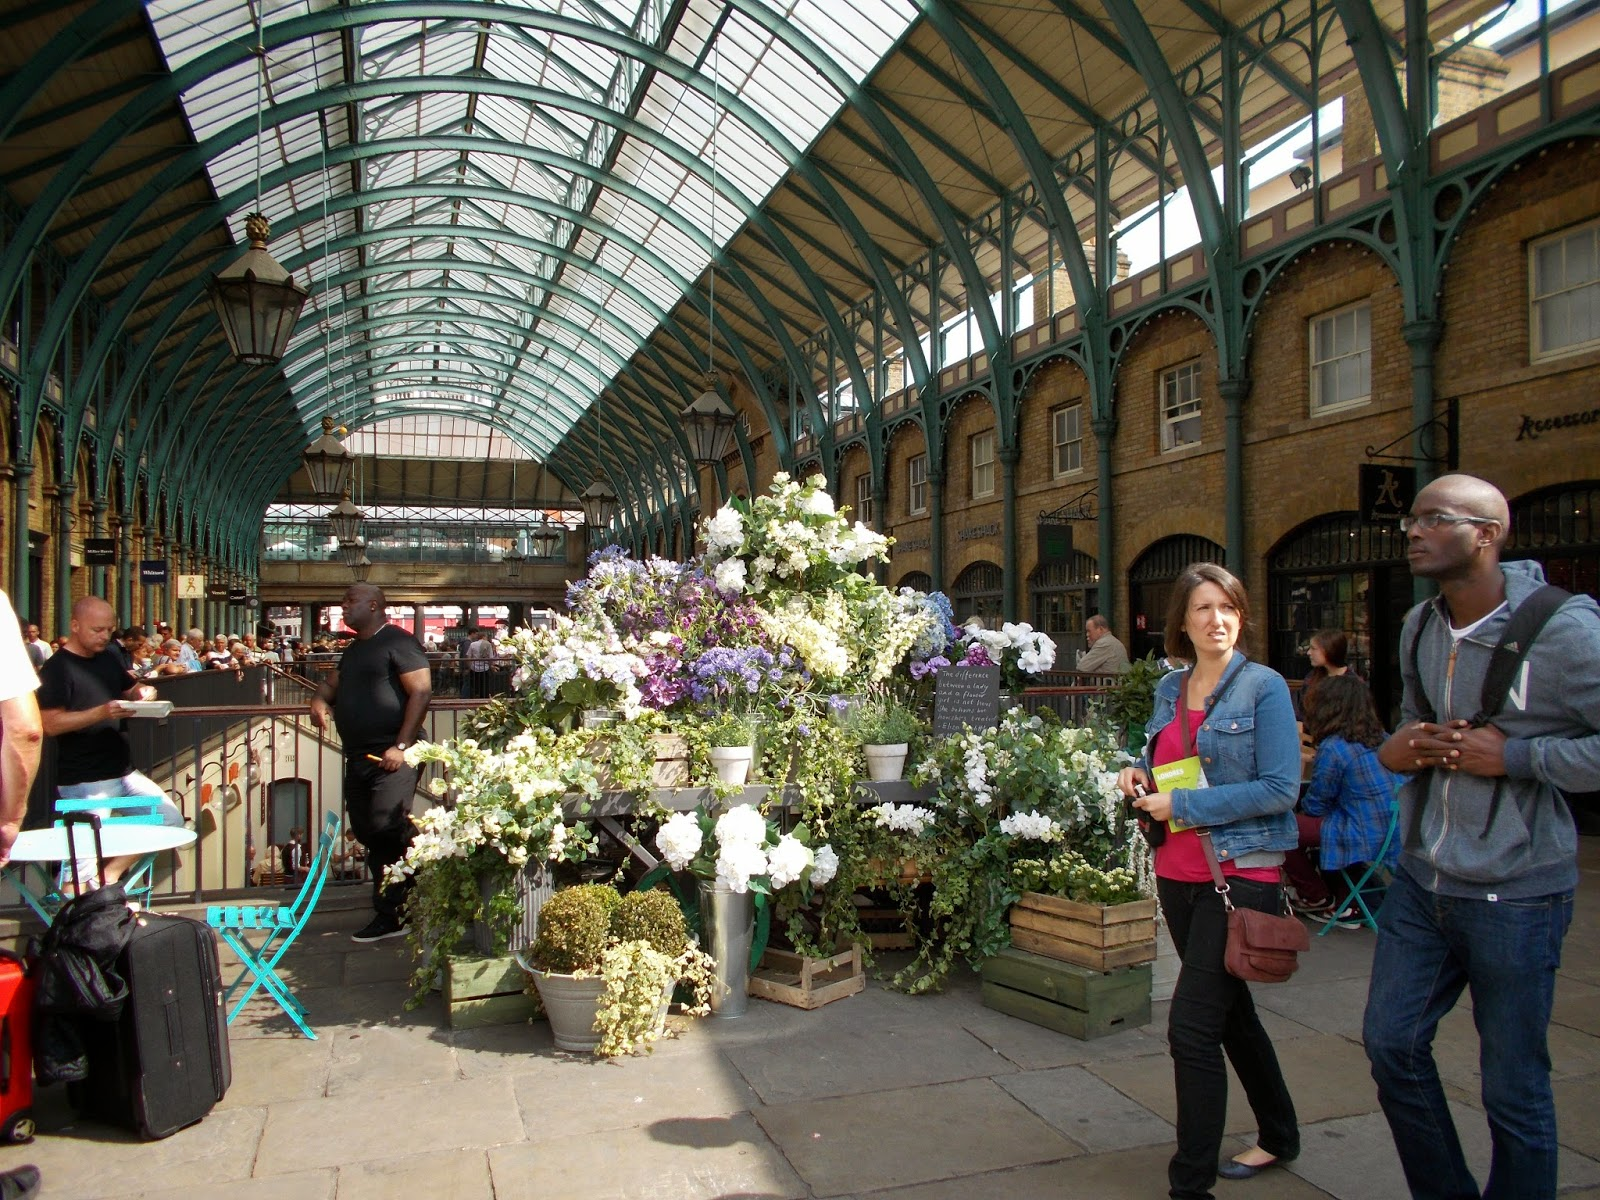 Covent garden flower market interior small 2 - The Flower Market Now Above And Then Below